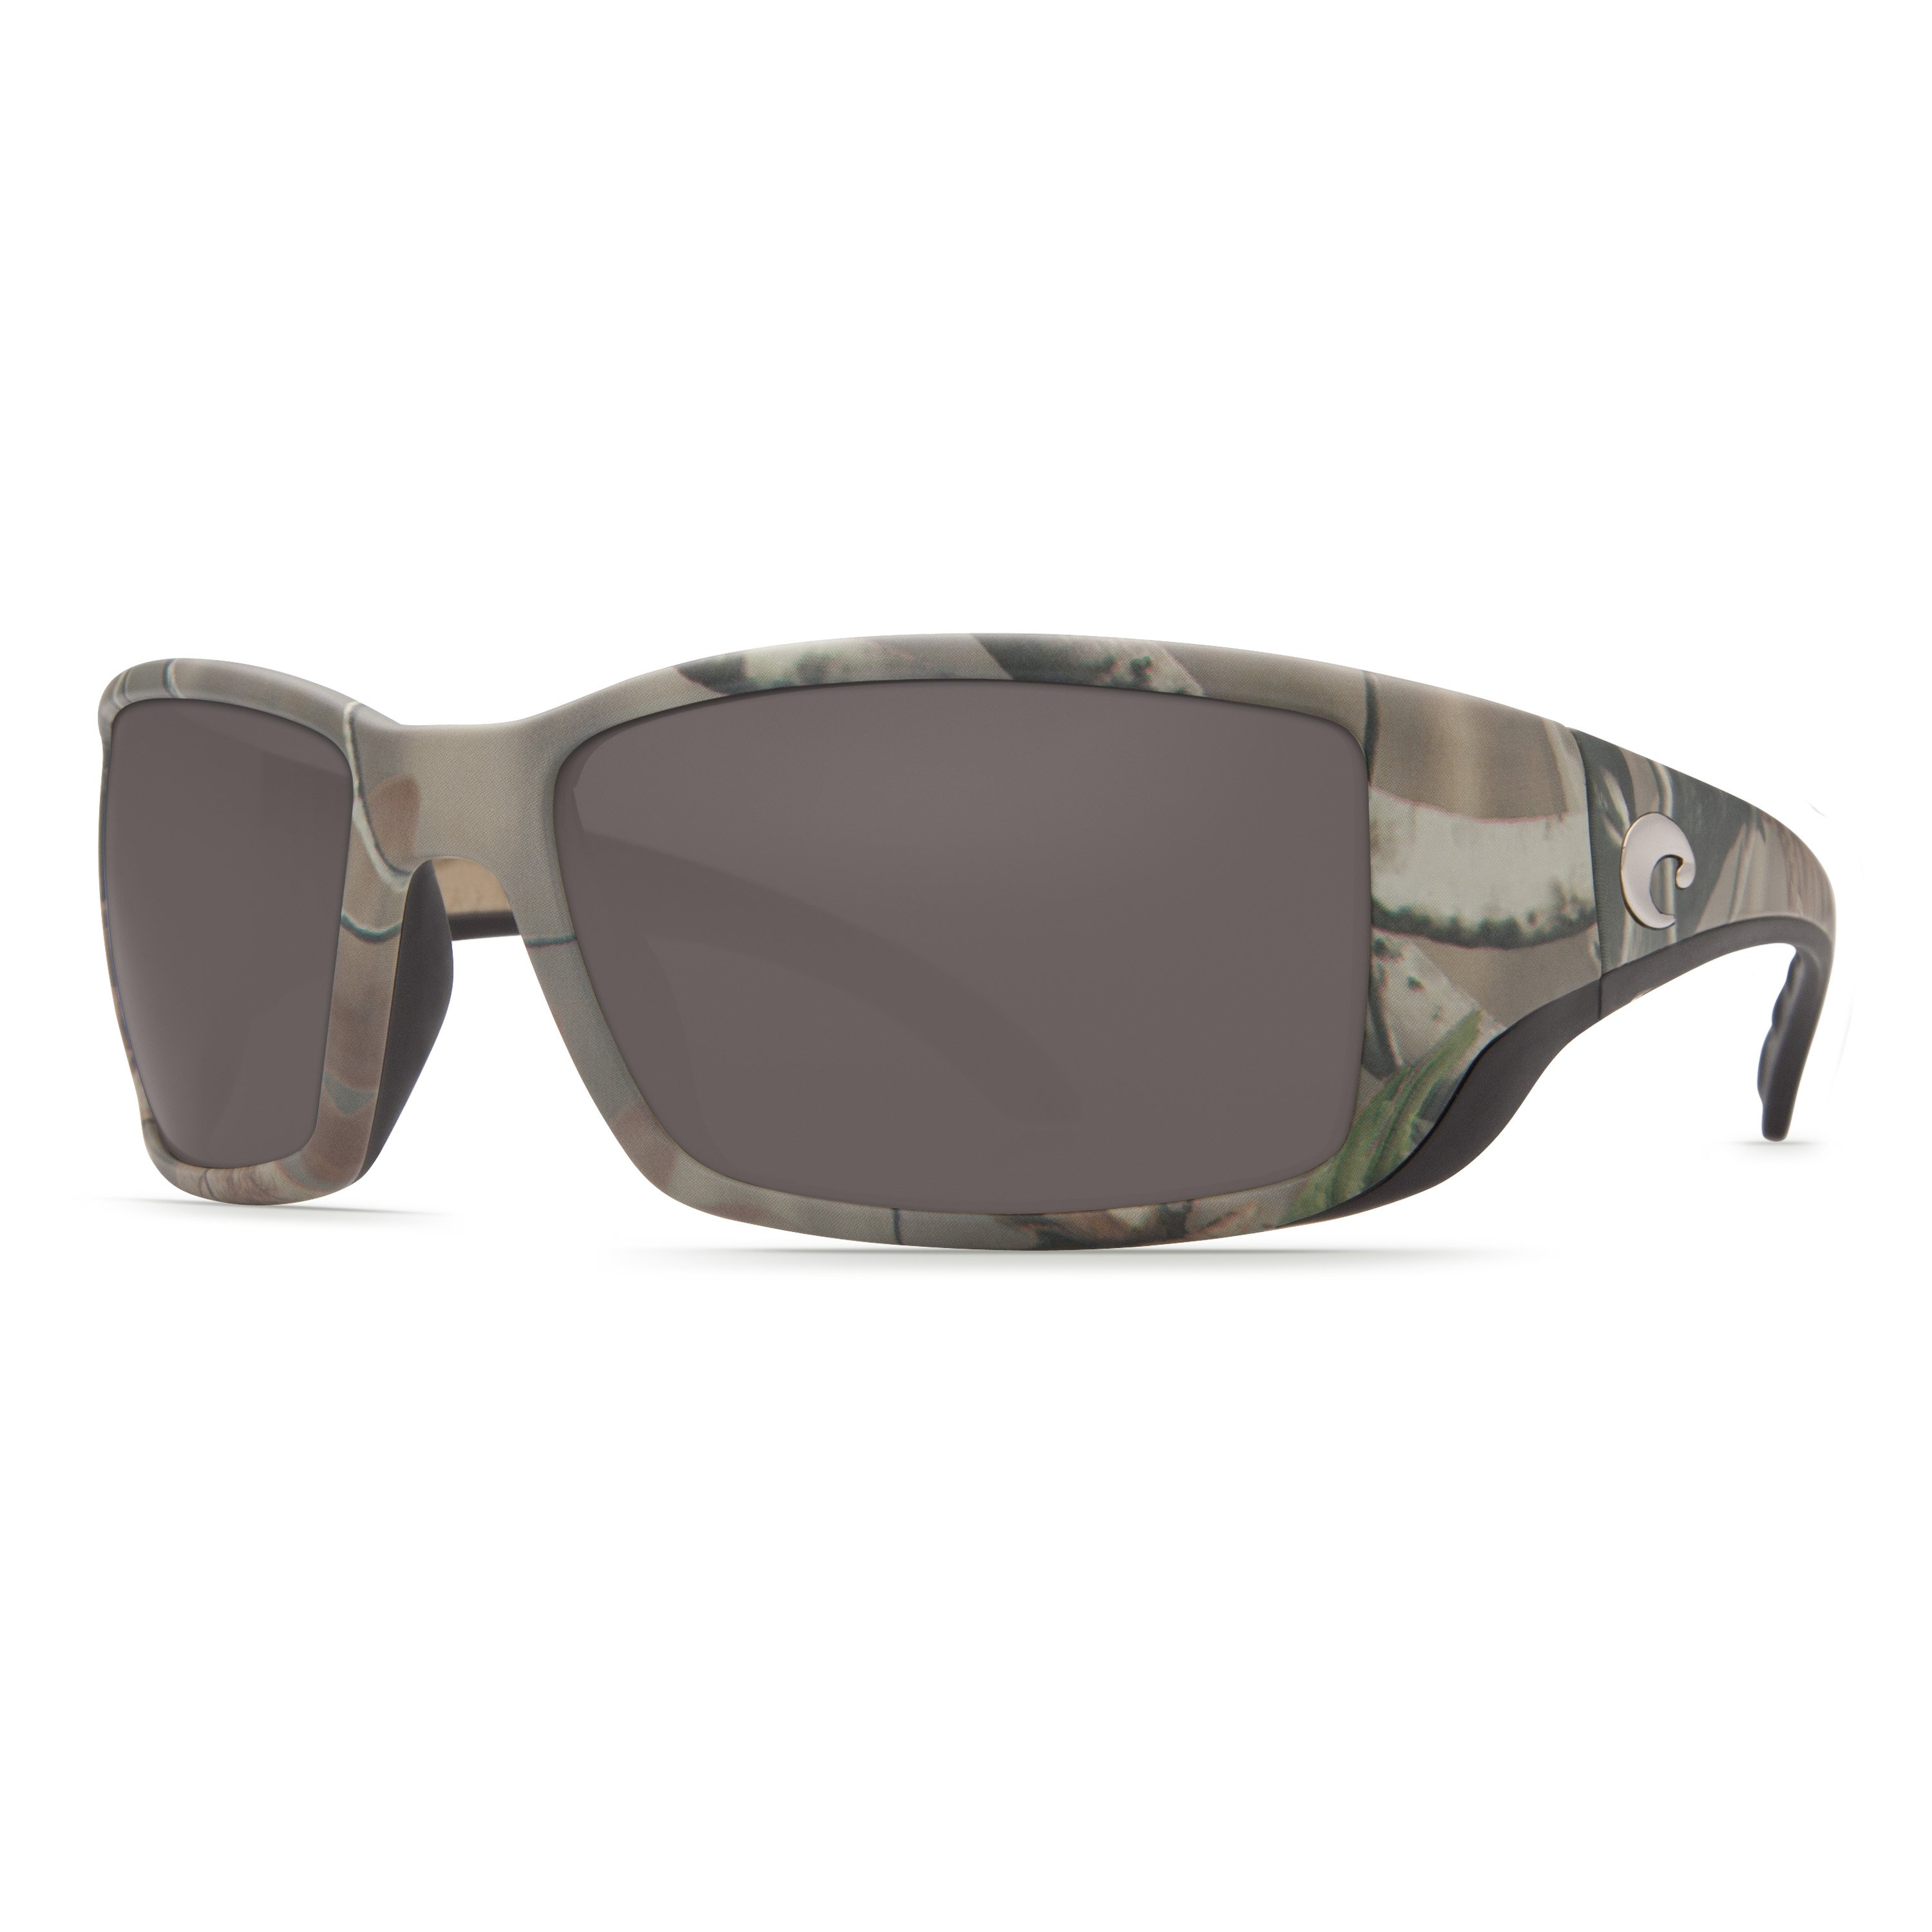 a0d1c20b6ca Costa Introduces New Realtree® AP Camo Sunglasses